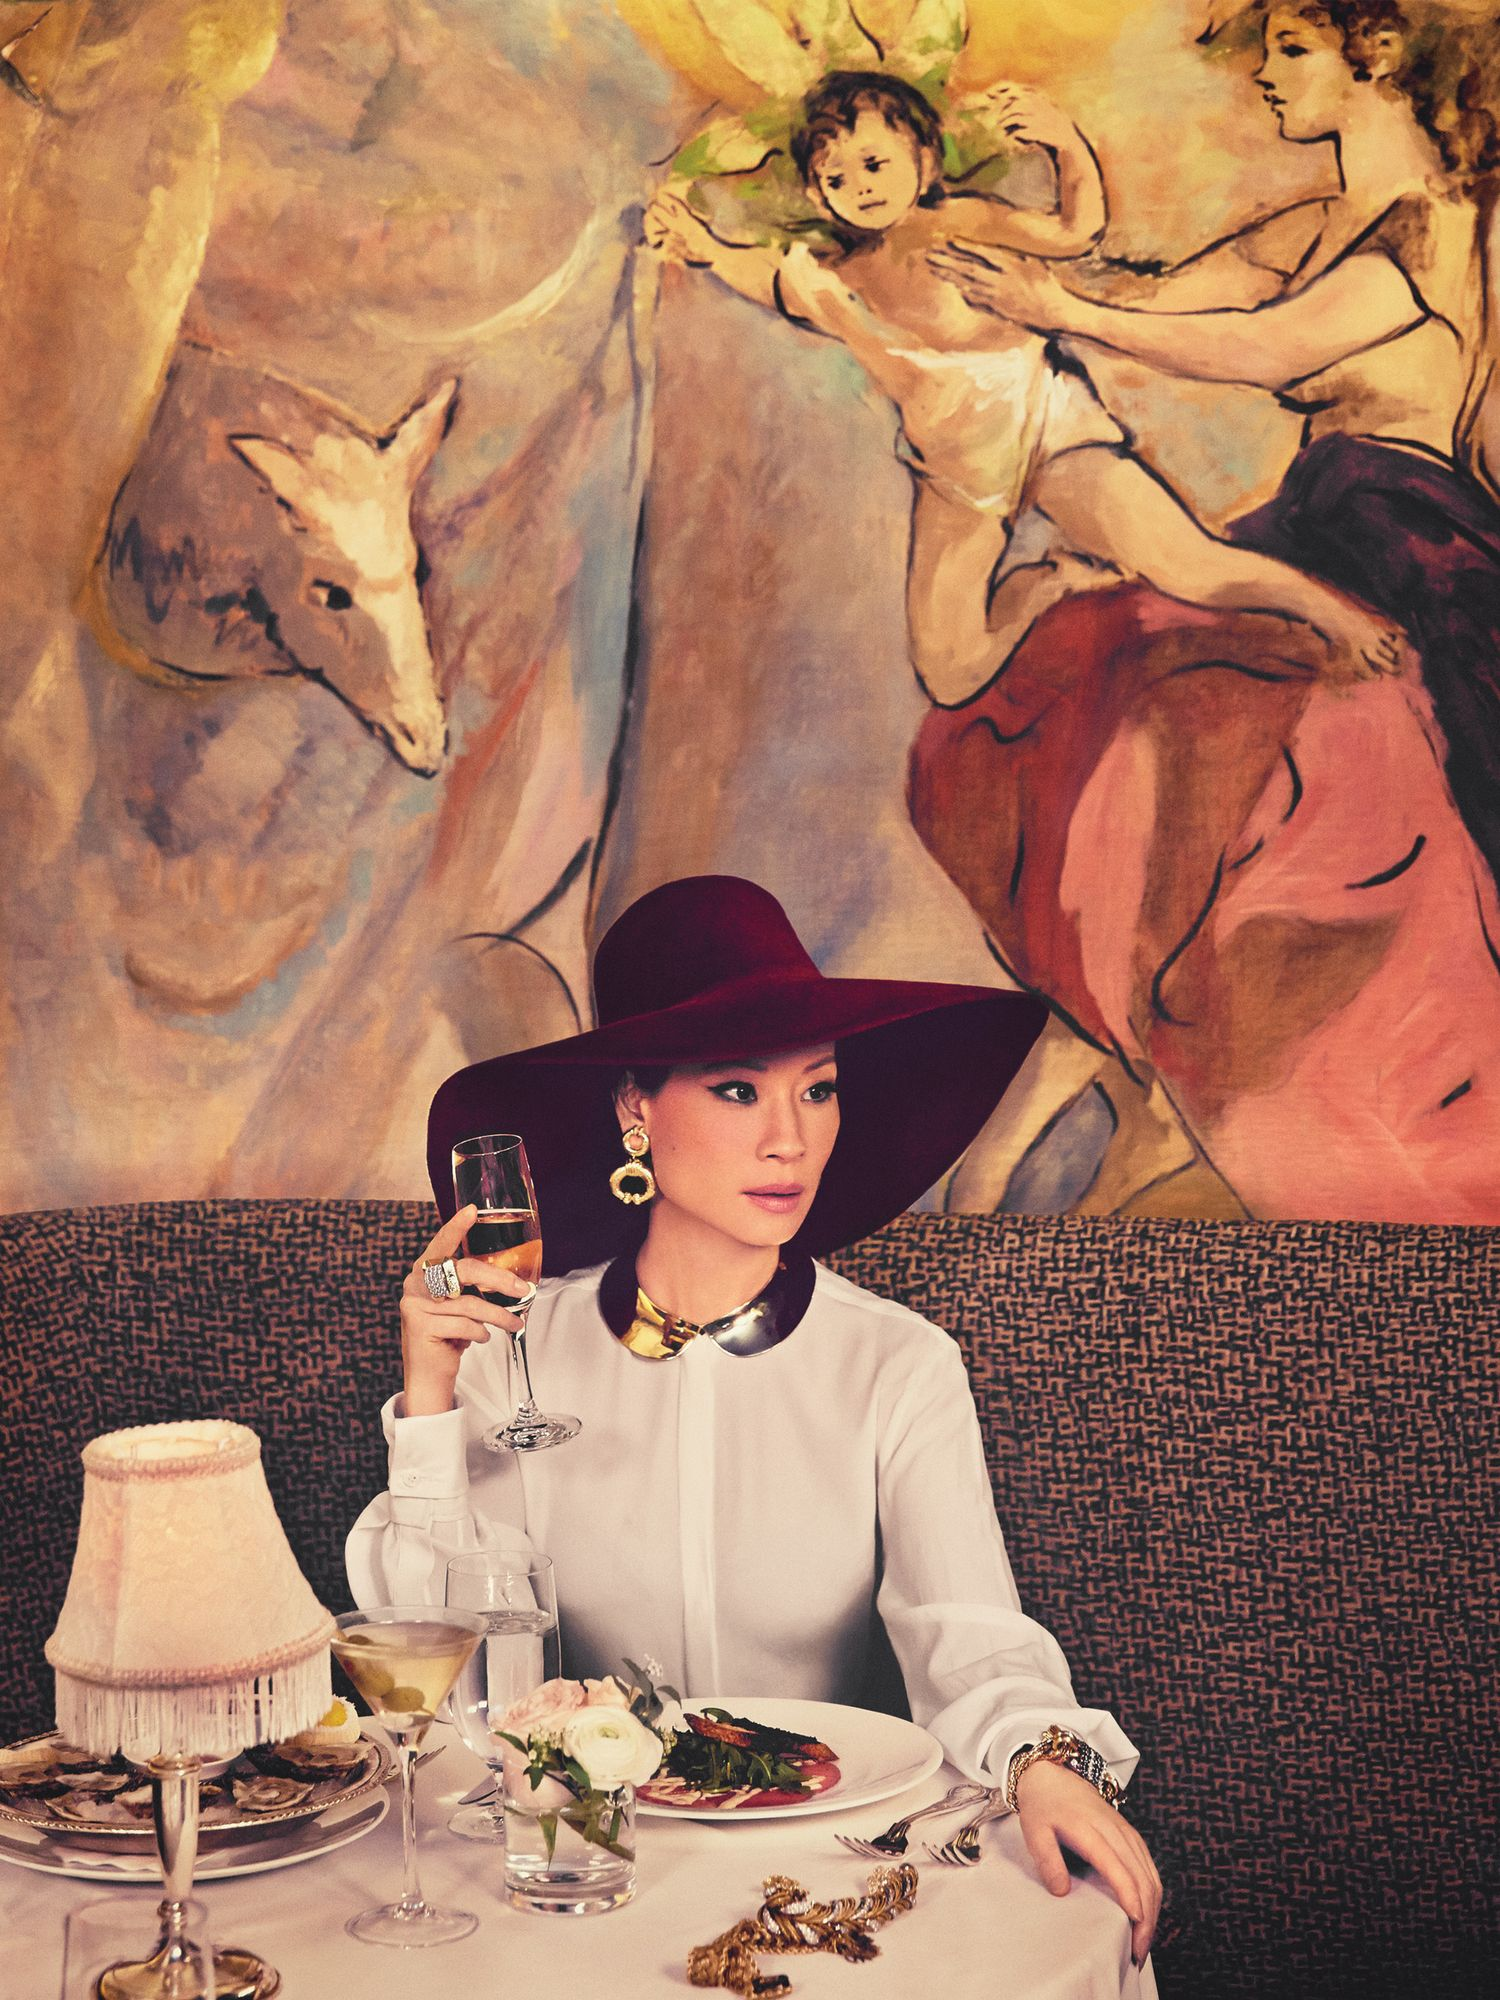 Lucy Liu of Elementary in red floppy hat drinking champagne